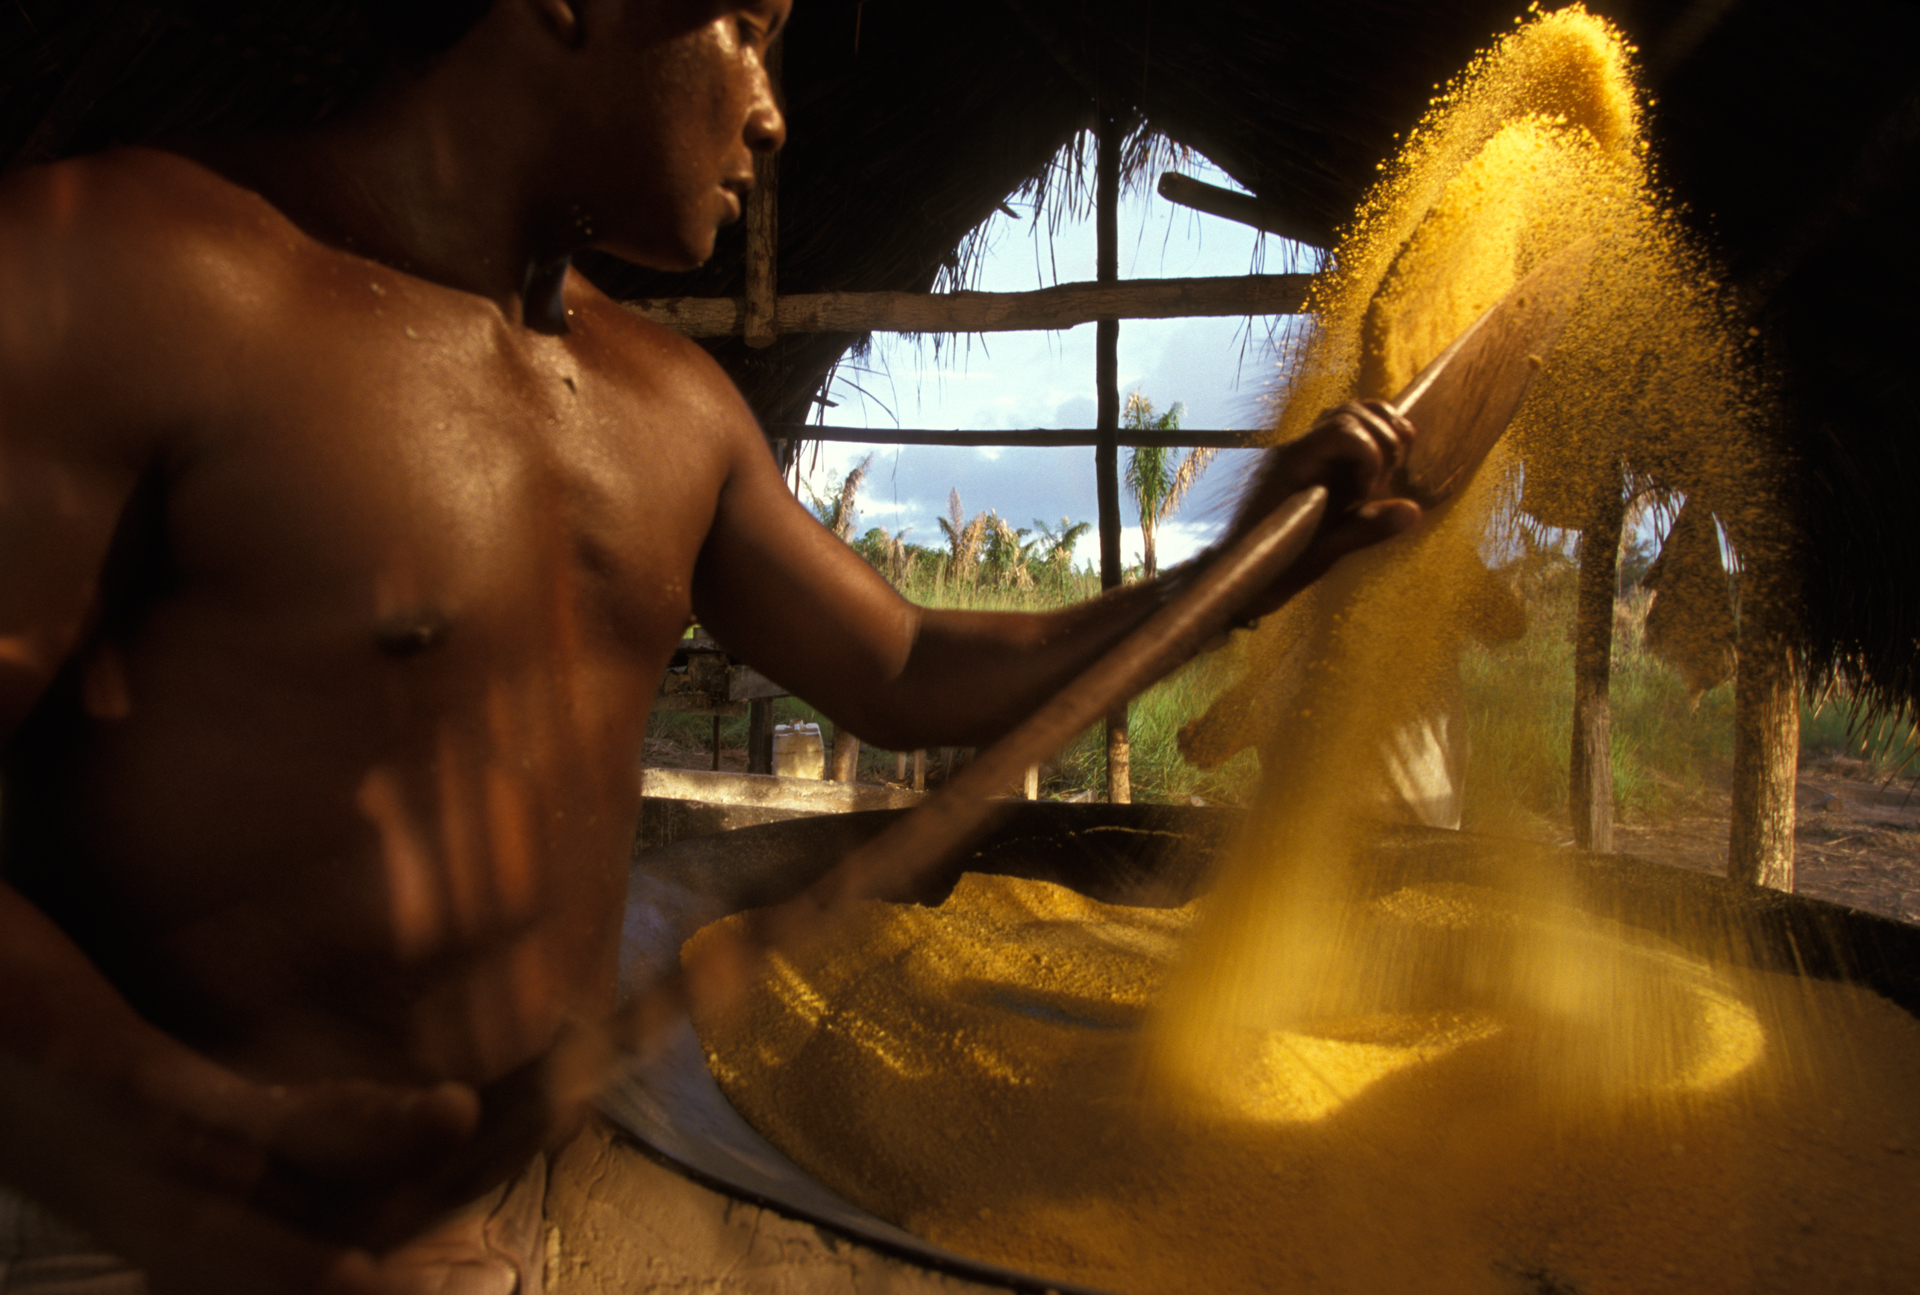 Using a wooden spatula, a Waiapixana worker dries the locally-grown cassava grain (maniok) over a large, heated pan. The cassava will later be sold at a nearby market.  Moskow, Brazil